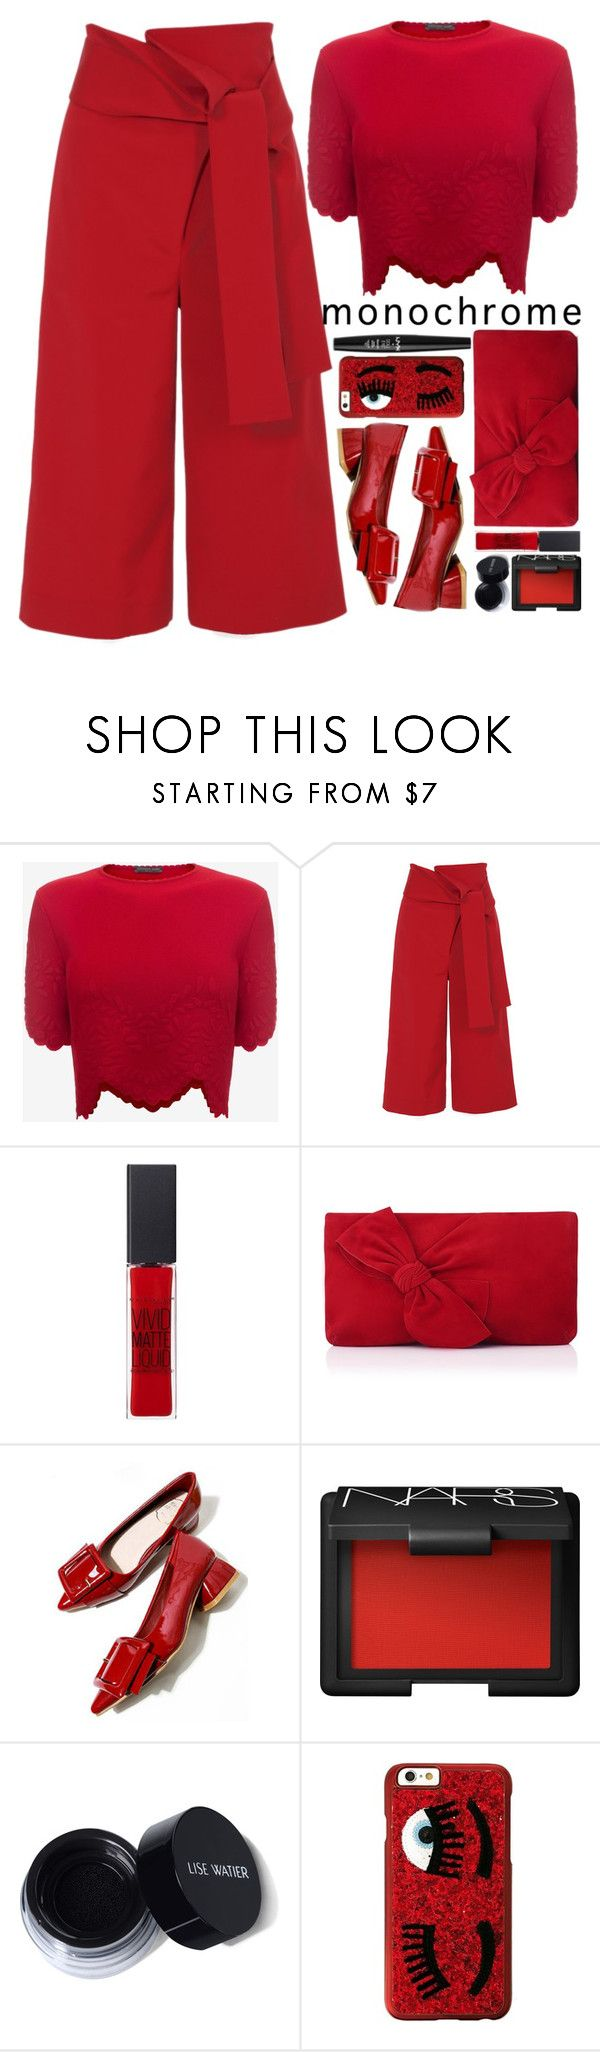 """""""Monochrome"""" by blueberrylexie ❤ liked on Polyvore featuring Alexander McQueen, TIBI, Maybelline, L.K.Bennett, NARS Cosmetics, Chiara Ferragni and NYX"""